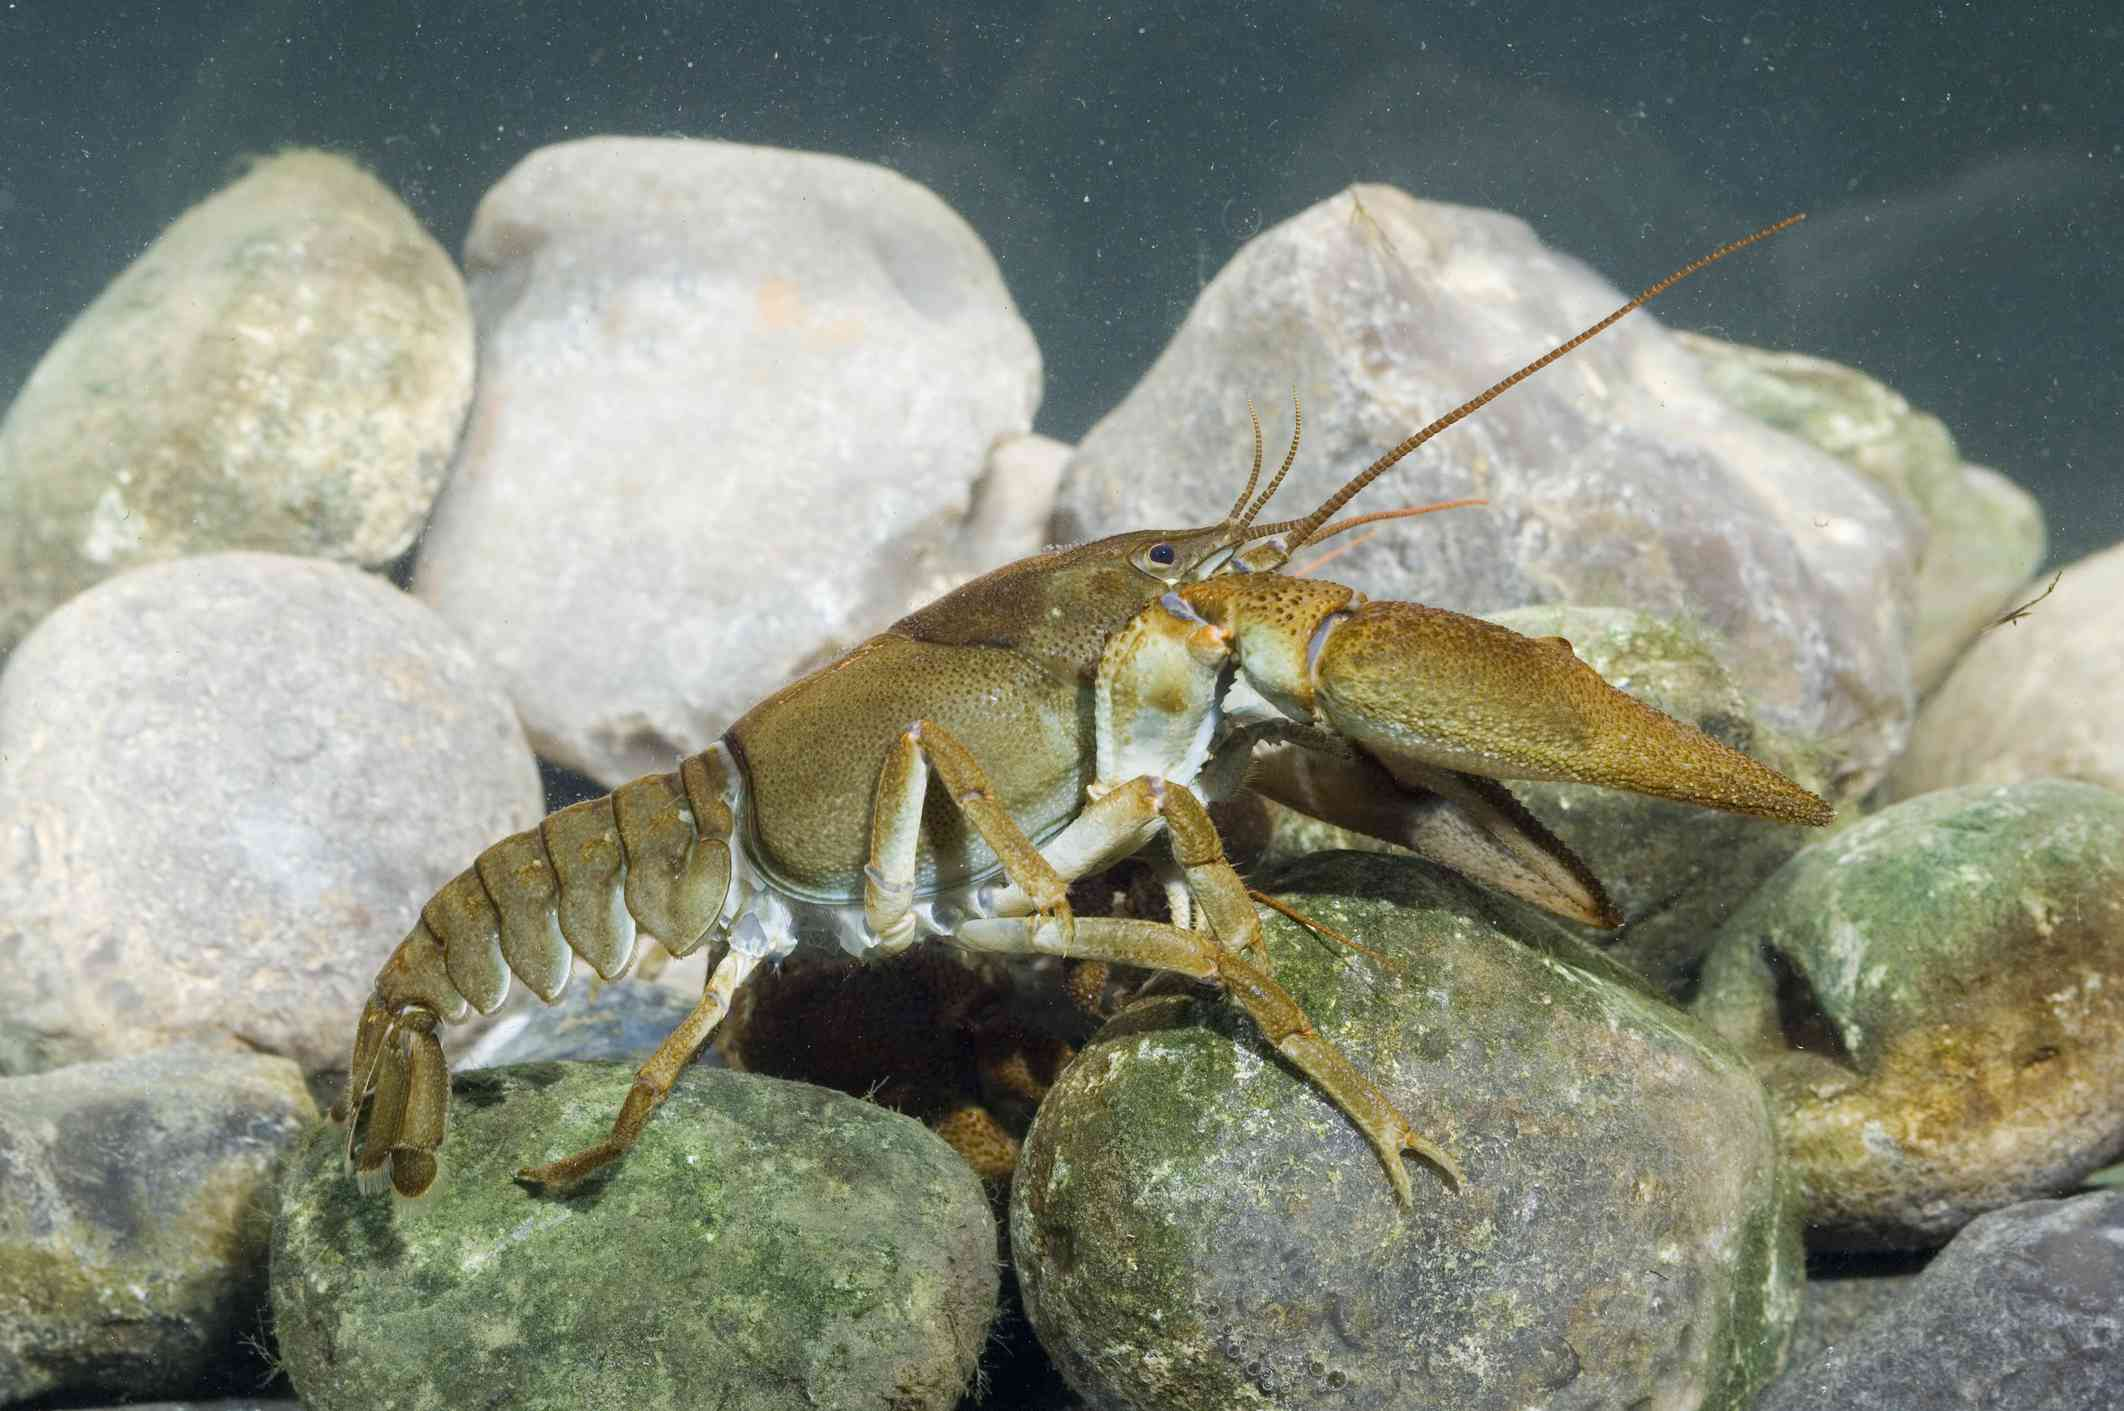 A white-clawed crayfish standing on a pile of gray and white rocks.